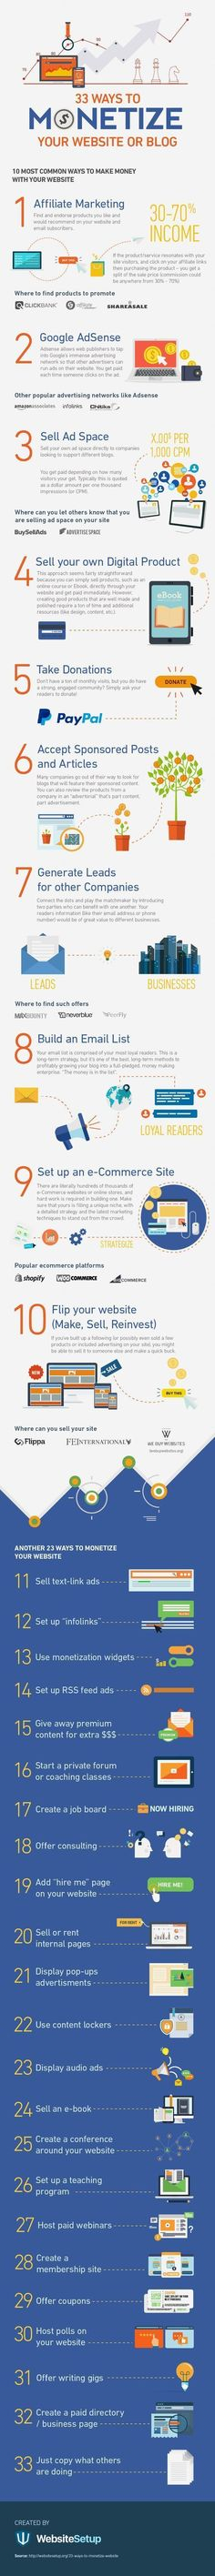 33 Ways to Make Money From Your Website or Blog [Infographic] - http://topseosoft.com/33-ways-to-make-money-from-your-website-or-blog-infographic/